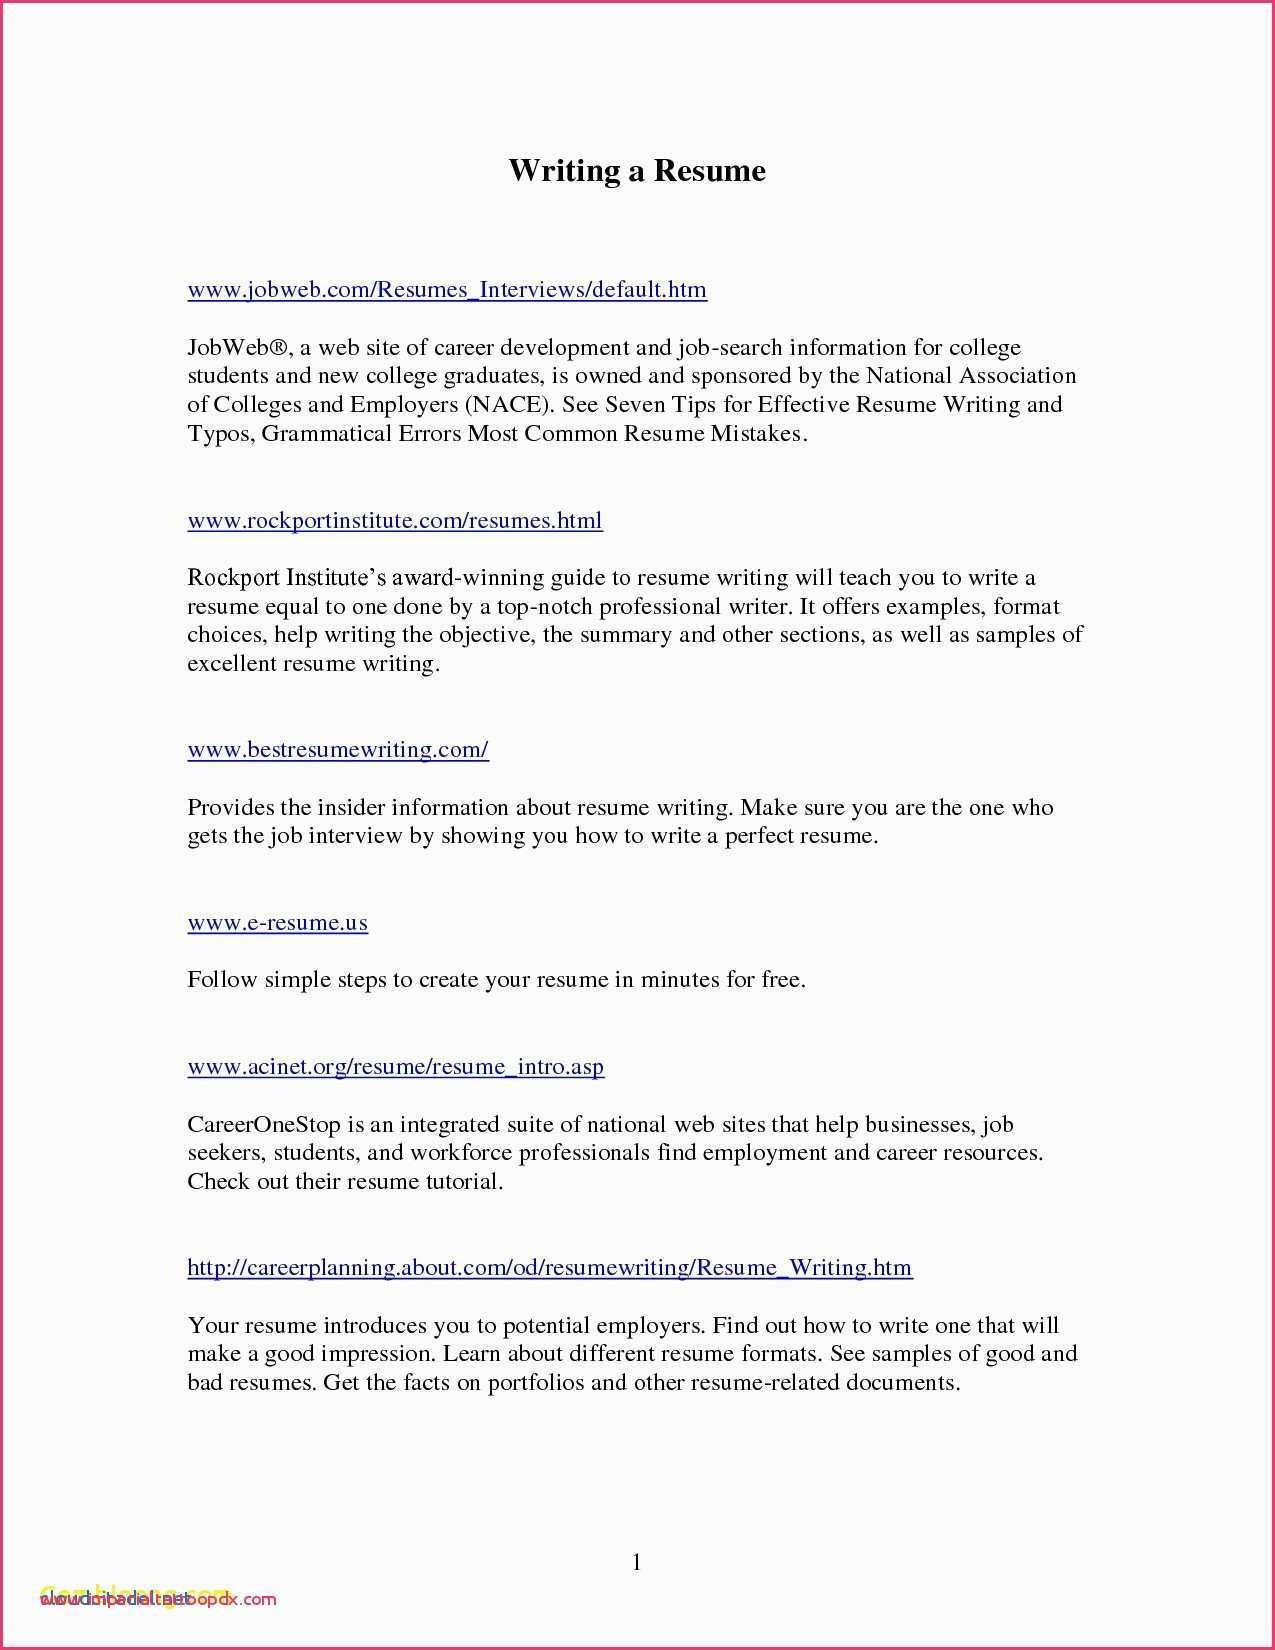 017 Research Paper Apa Outline Template Letter Format New Formal Mla Striking Free Blank Full